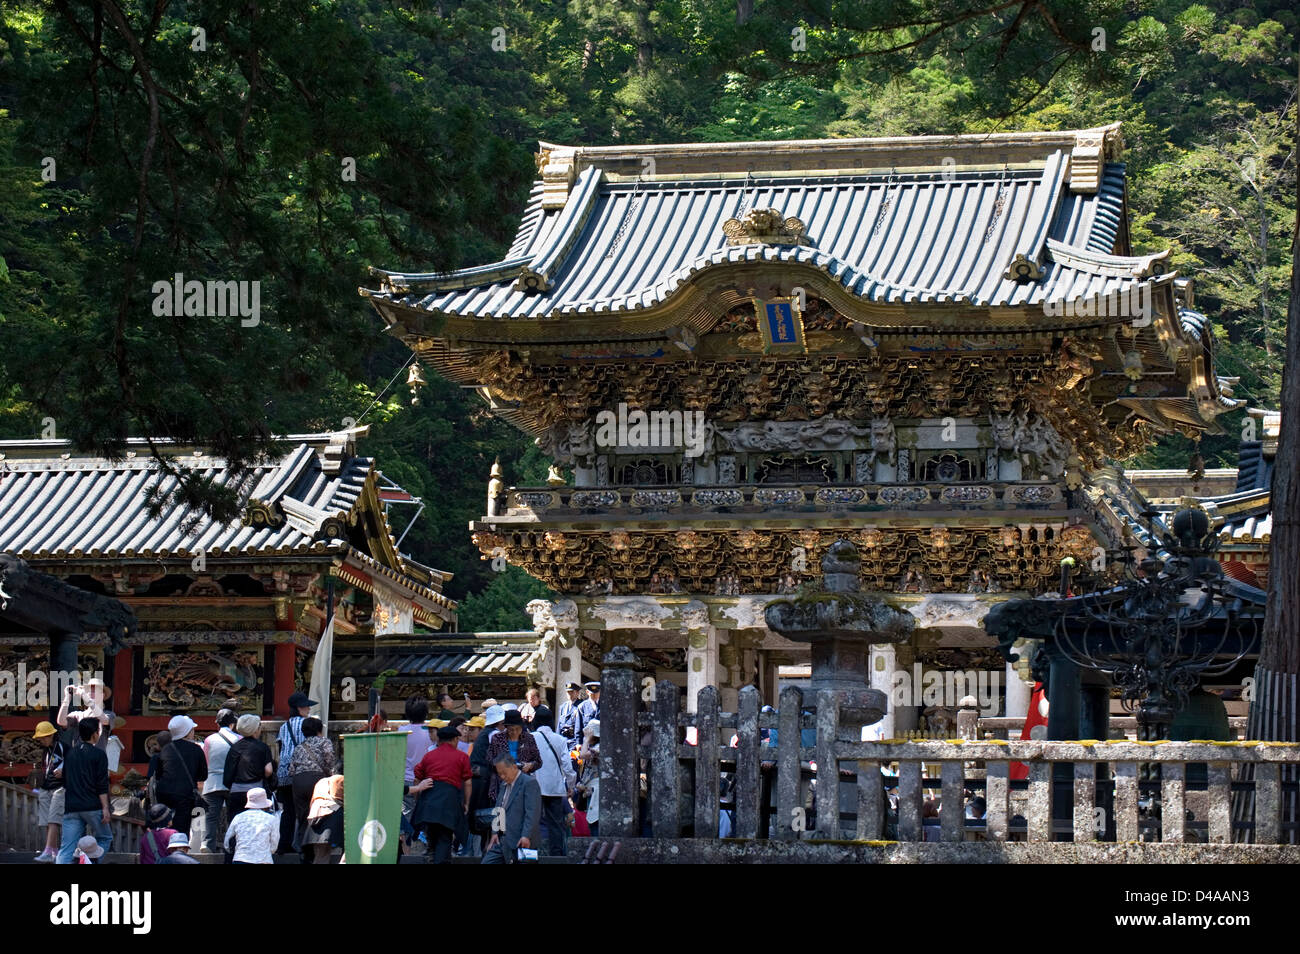 Crowds of visitors passing through the ornate Yomeimon Gate at the top of stone steps at Toshogu Jinja Shrine in - Stock Image